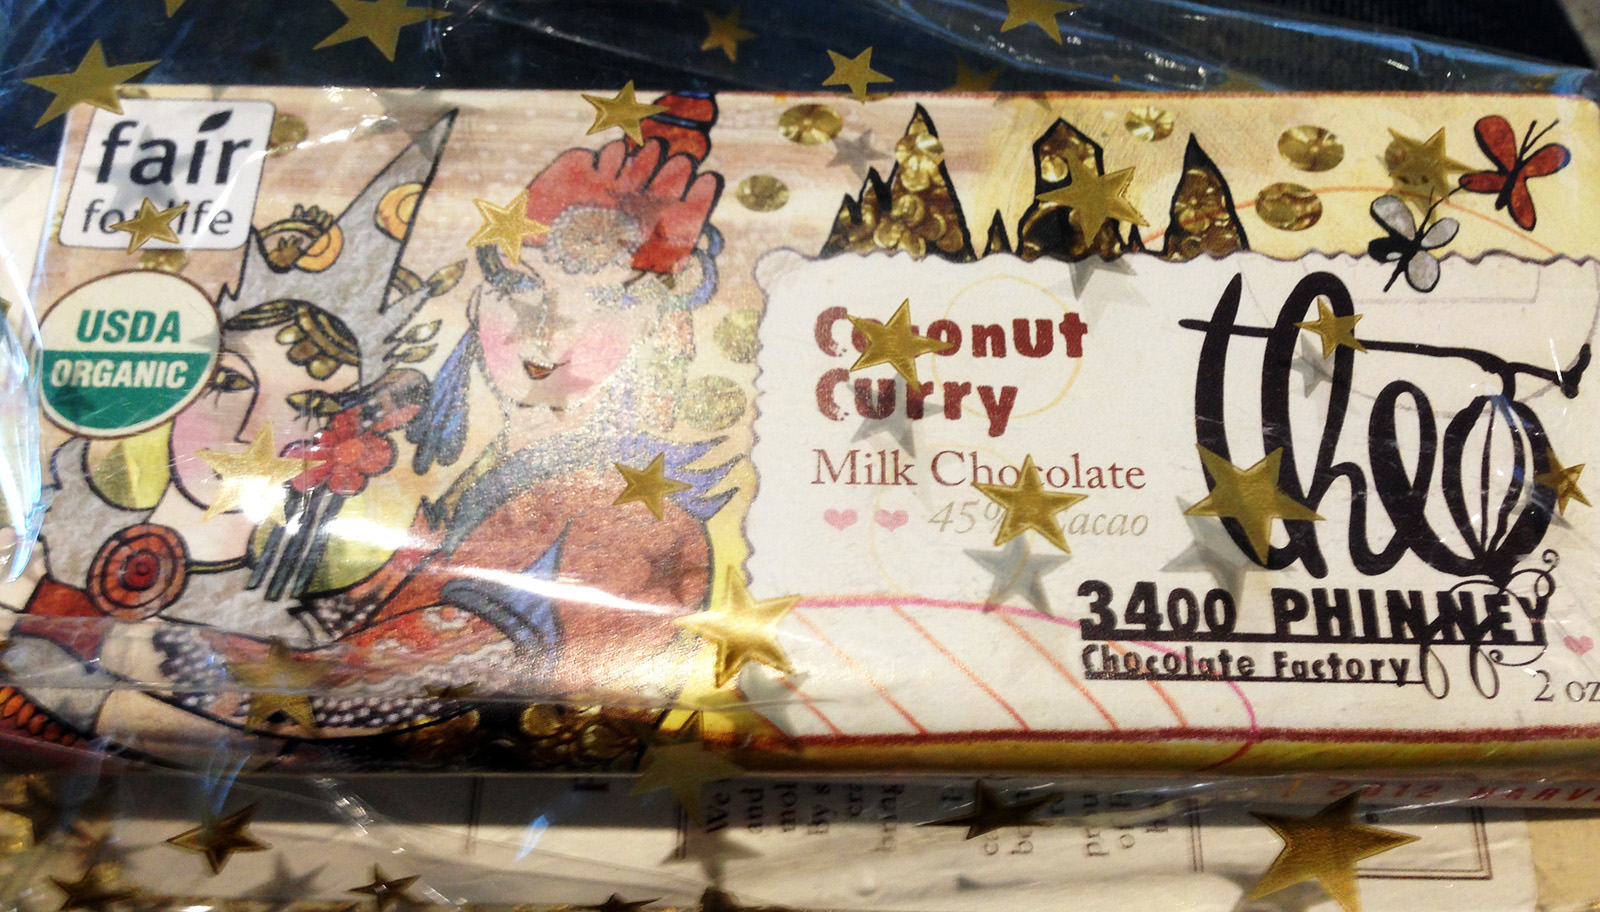 coconut curry chocolate